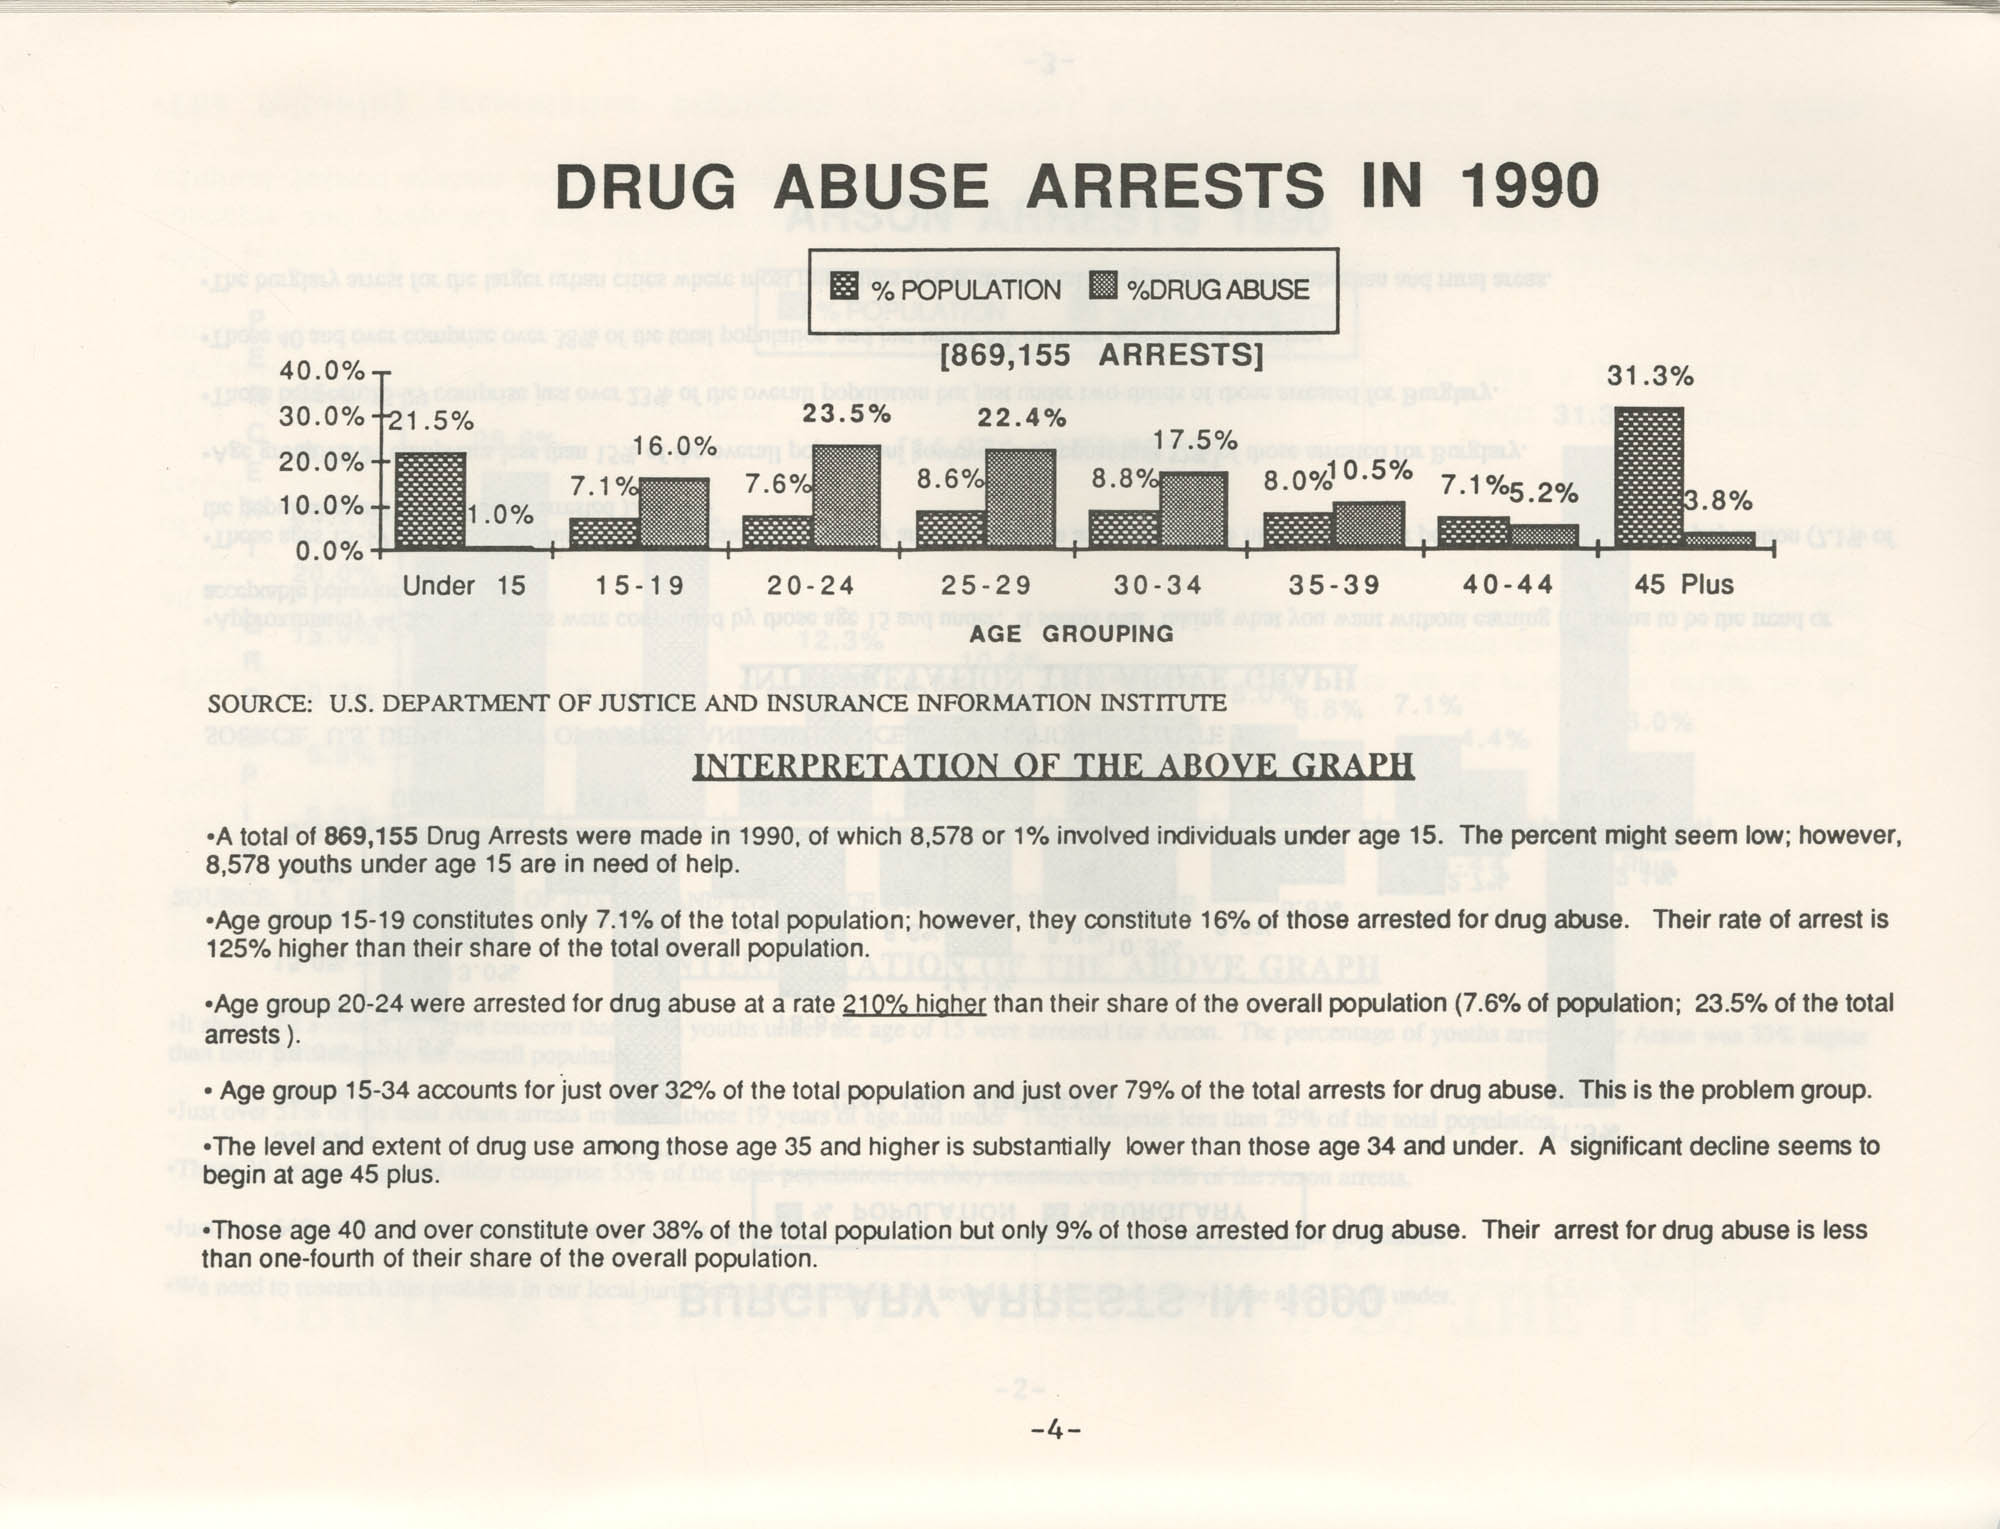 Crime and Criminal Activities in the U.S.A., NAACP National Board of Directors, Page 4